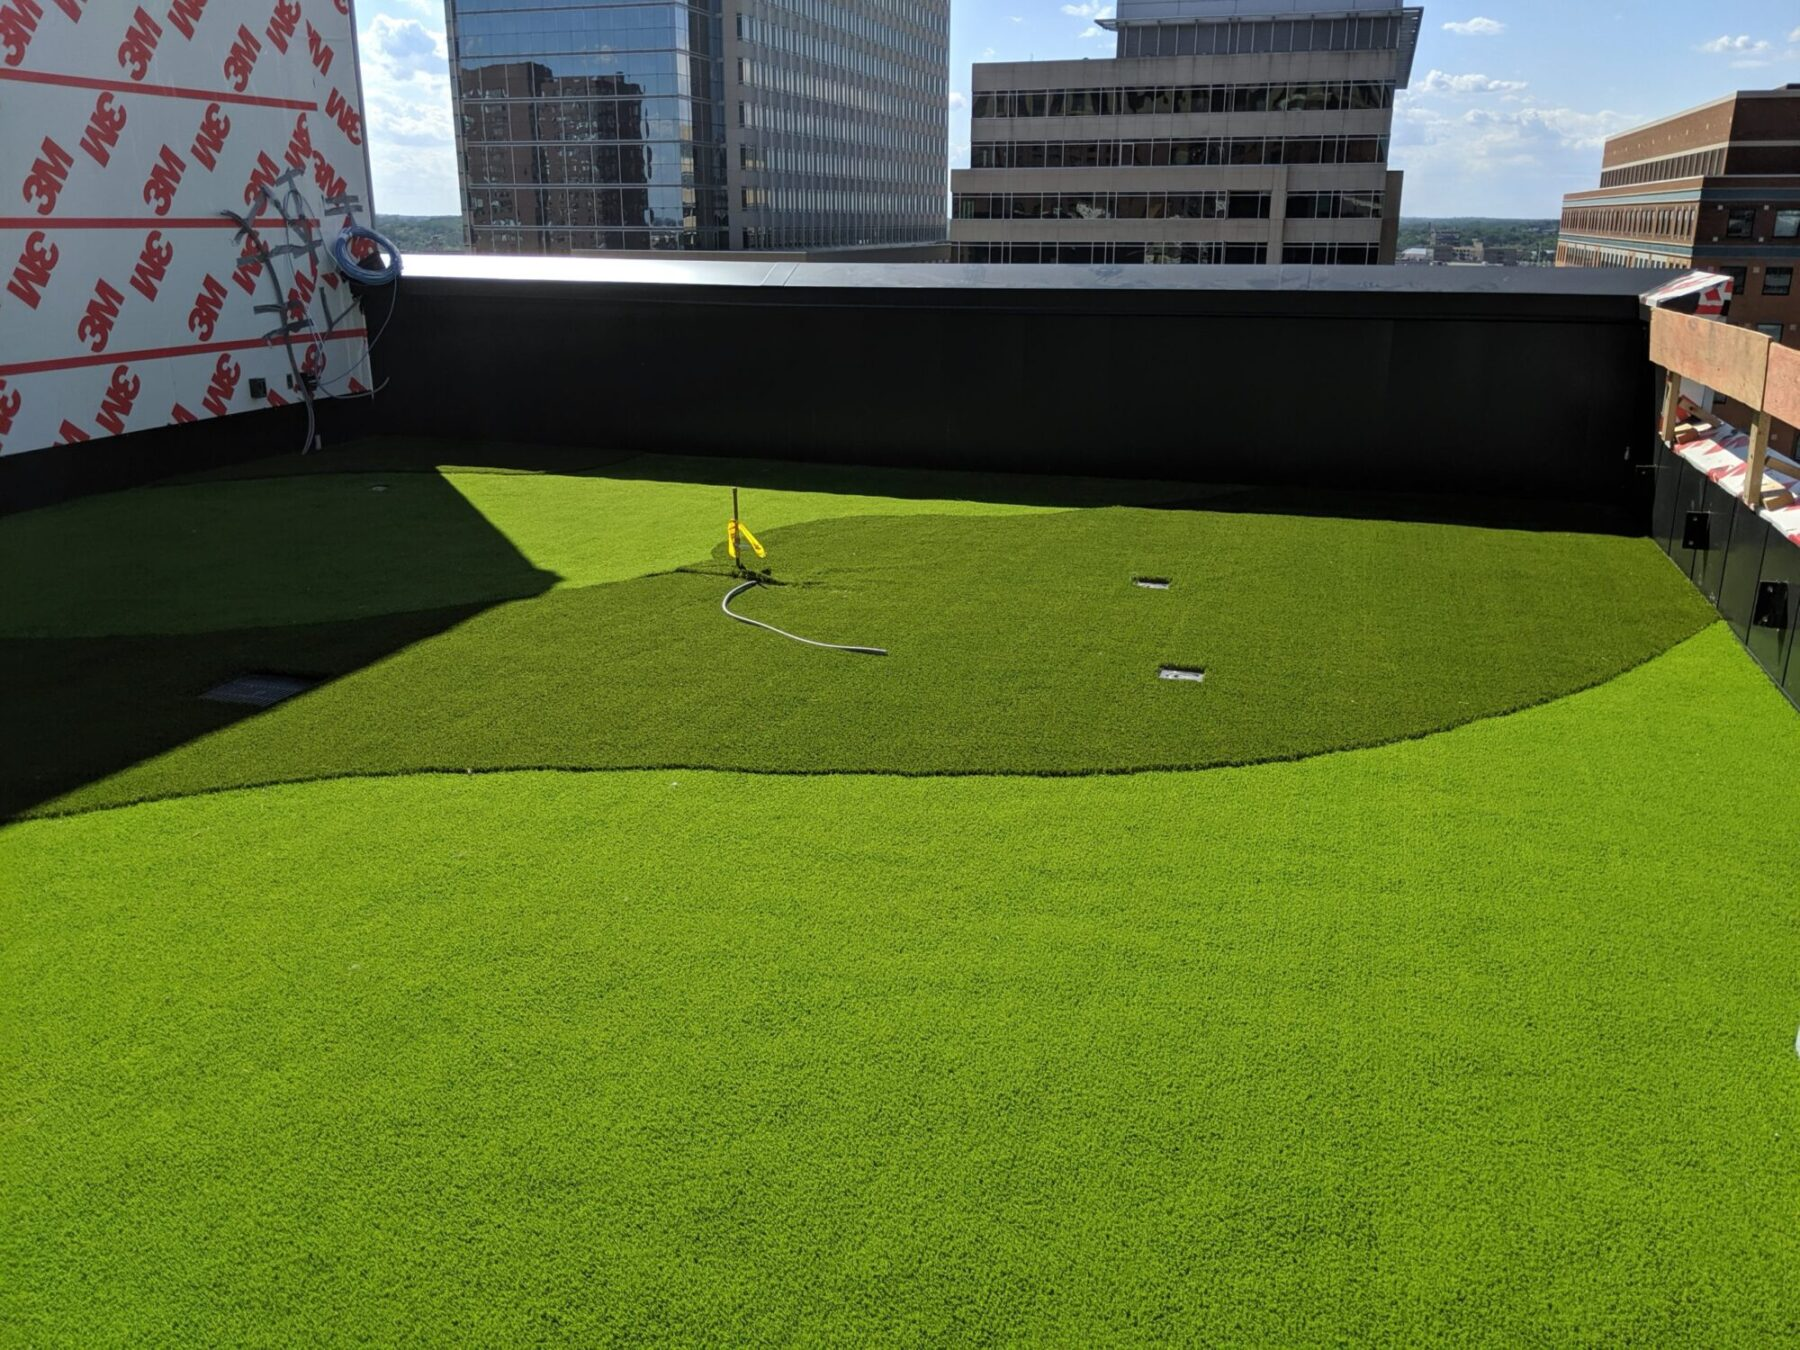 putting green on new york rooftop